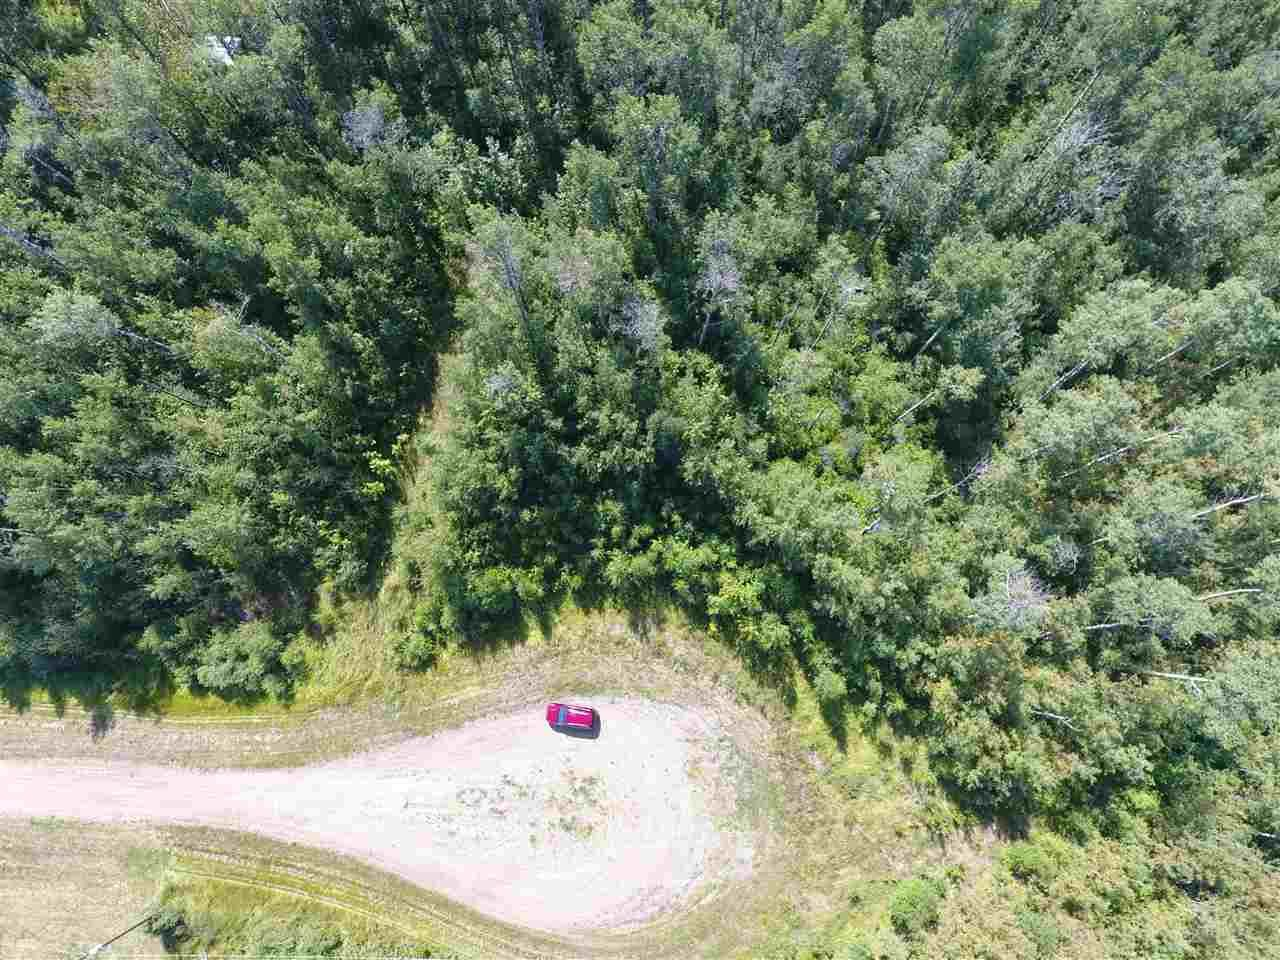 Photo 8: Photos: 22 Morgan Way: Rural Lac Ste. Anne County Rural Land/Vacant Lot for sale : MLS®# E4209833